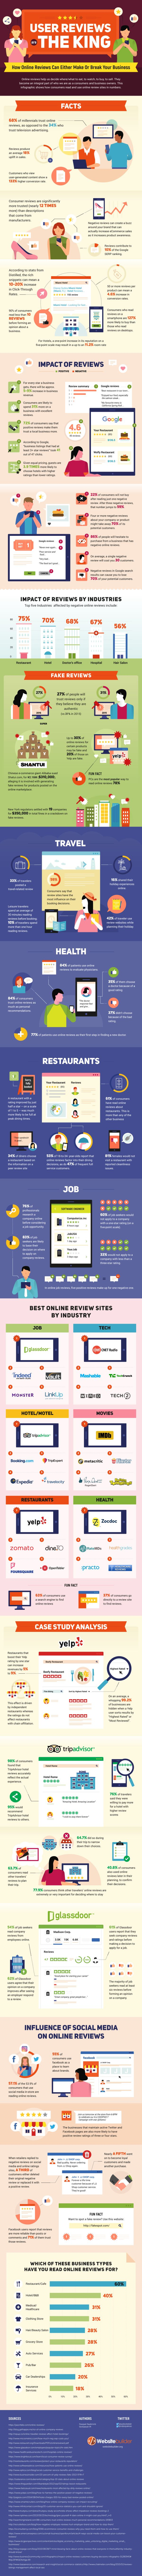 Infographic: Online Reviews & Ratings